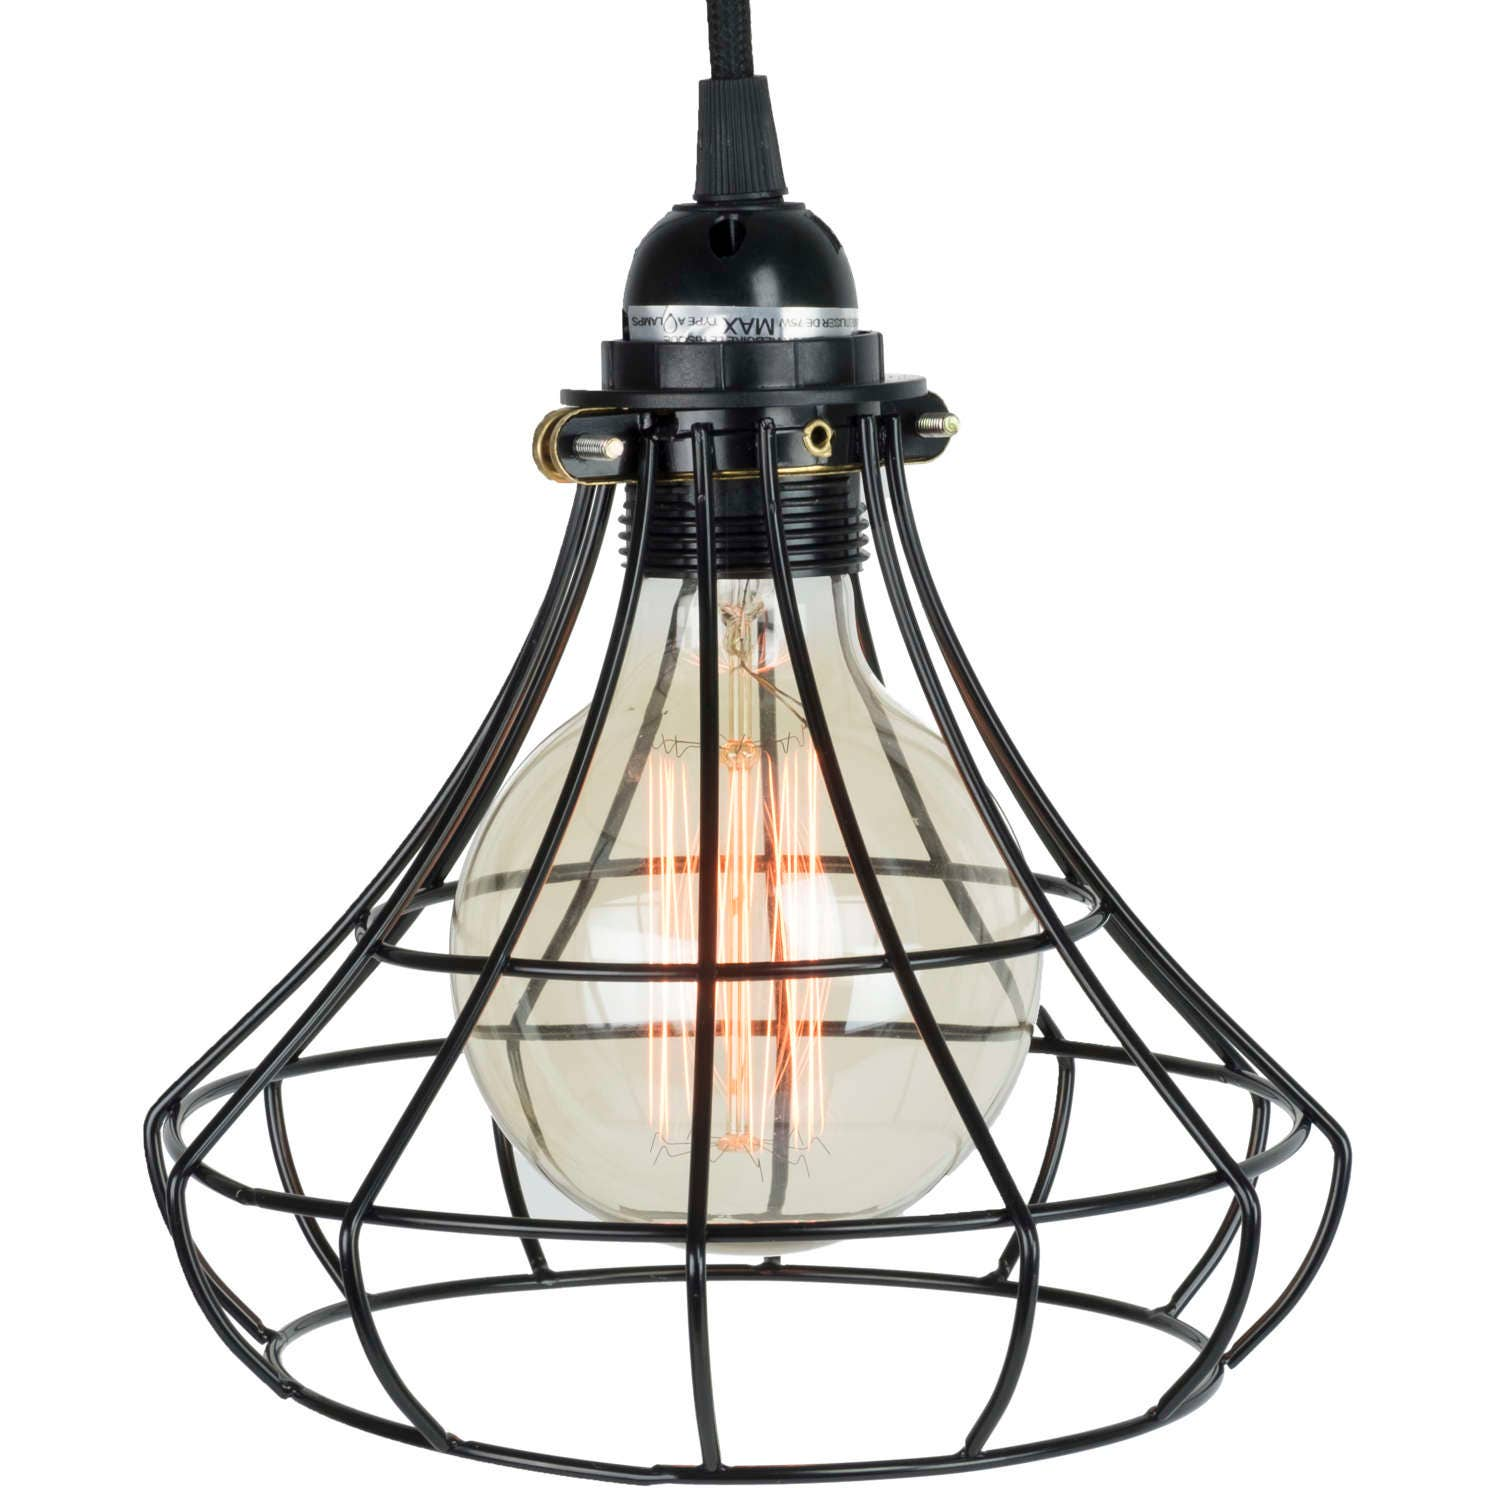 Pendant Lighting By Rustic State Authentic Vintage Lights: Pendant Lighting By Rustic State With Industrial Style Sphere